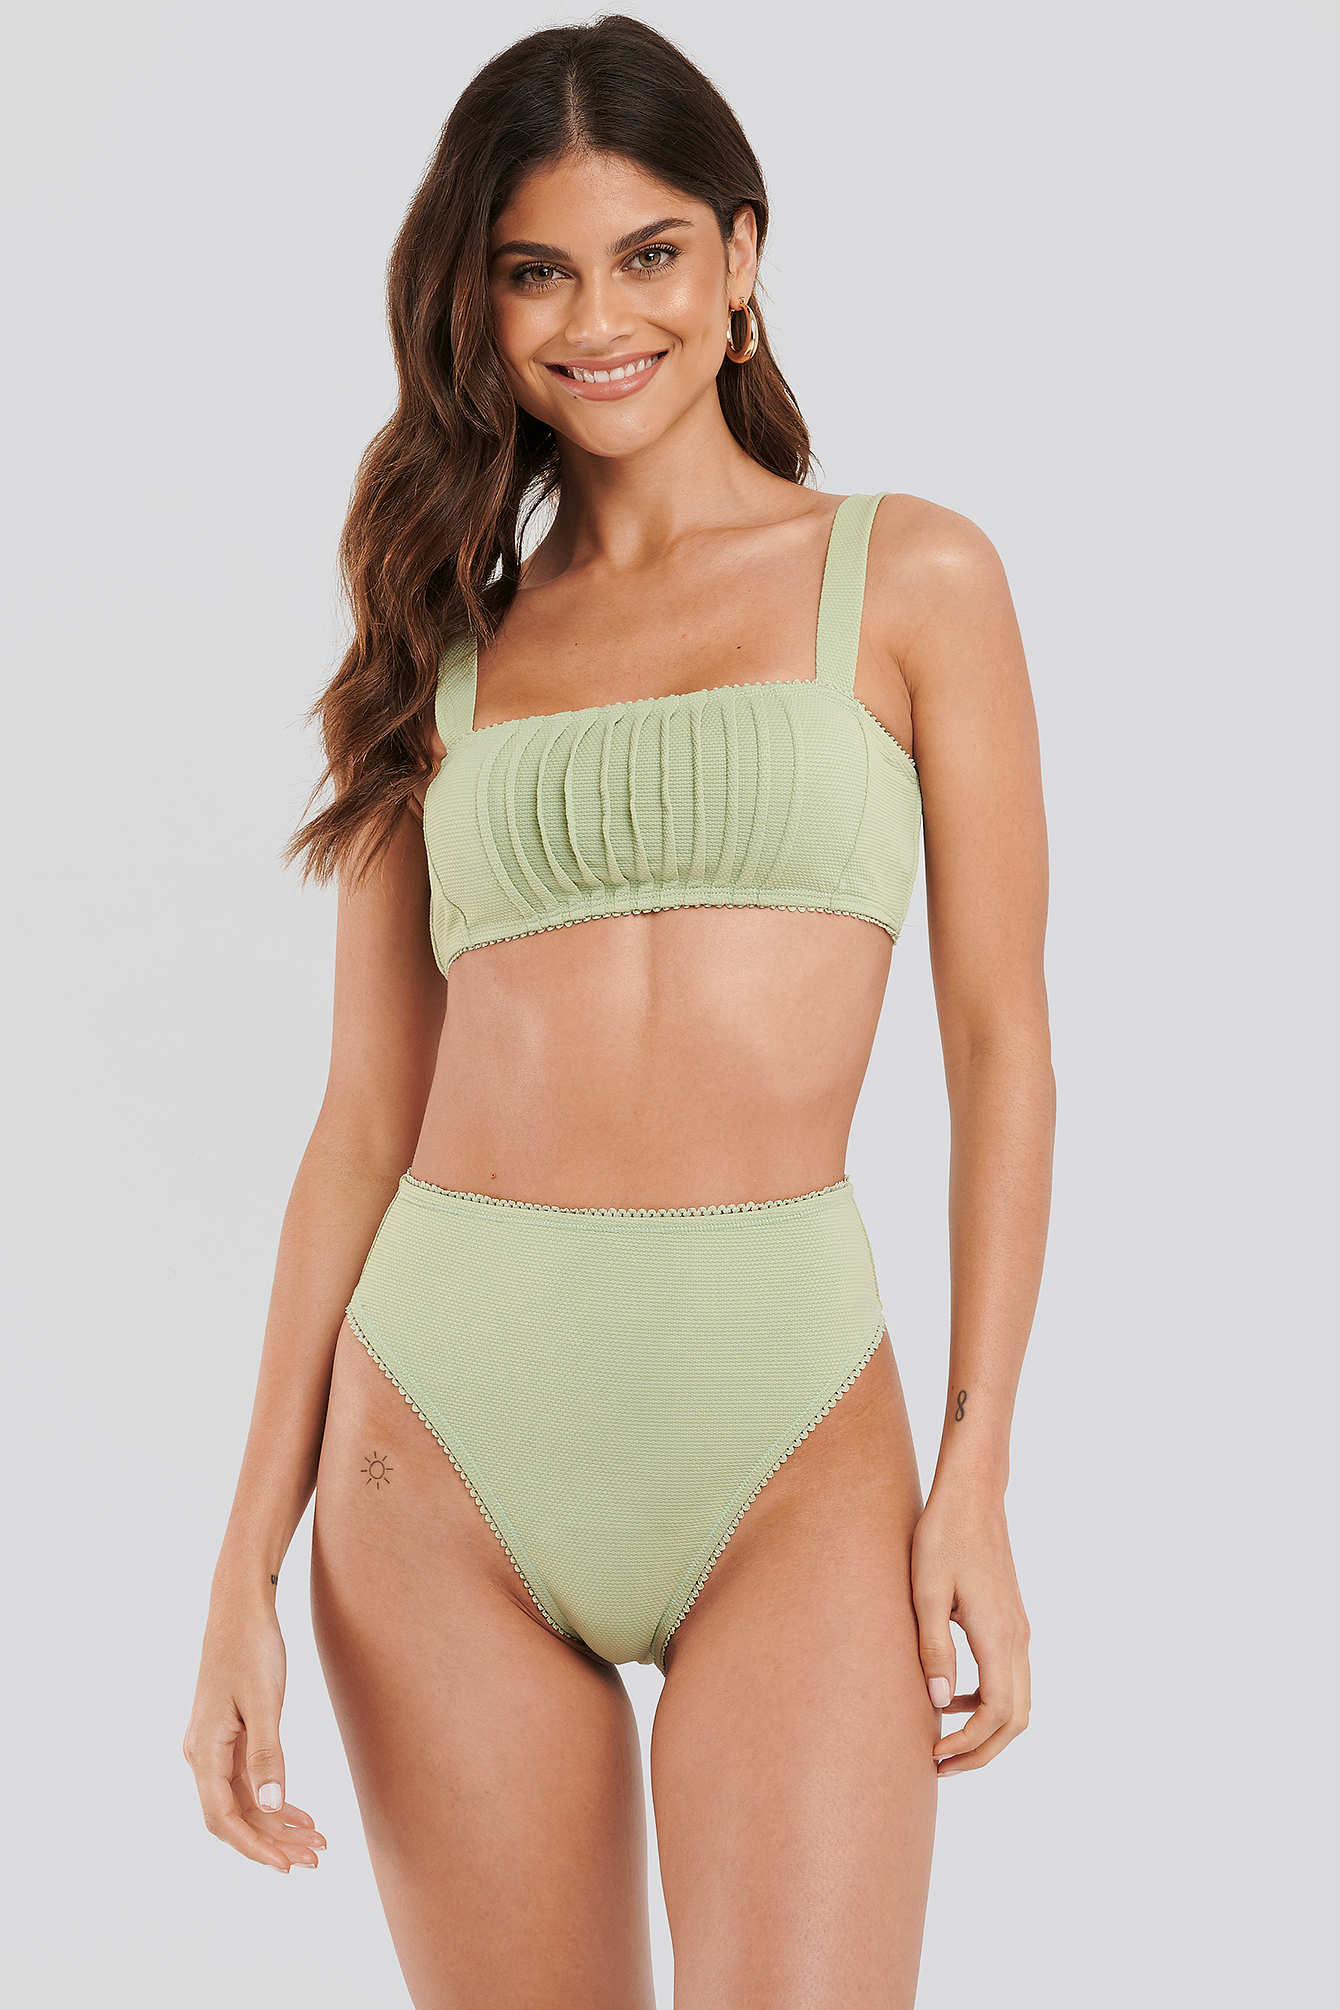 Dusty Green Structured Lace Edge High Waist Bikini Panty